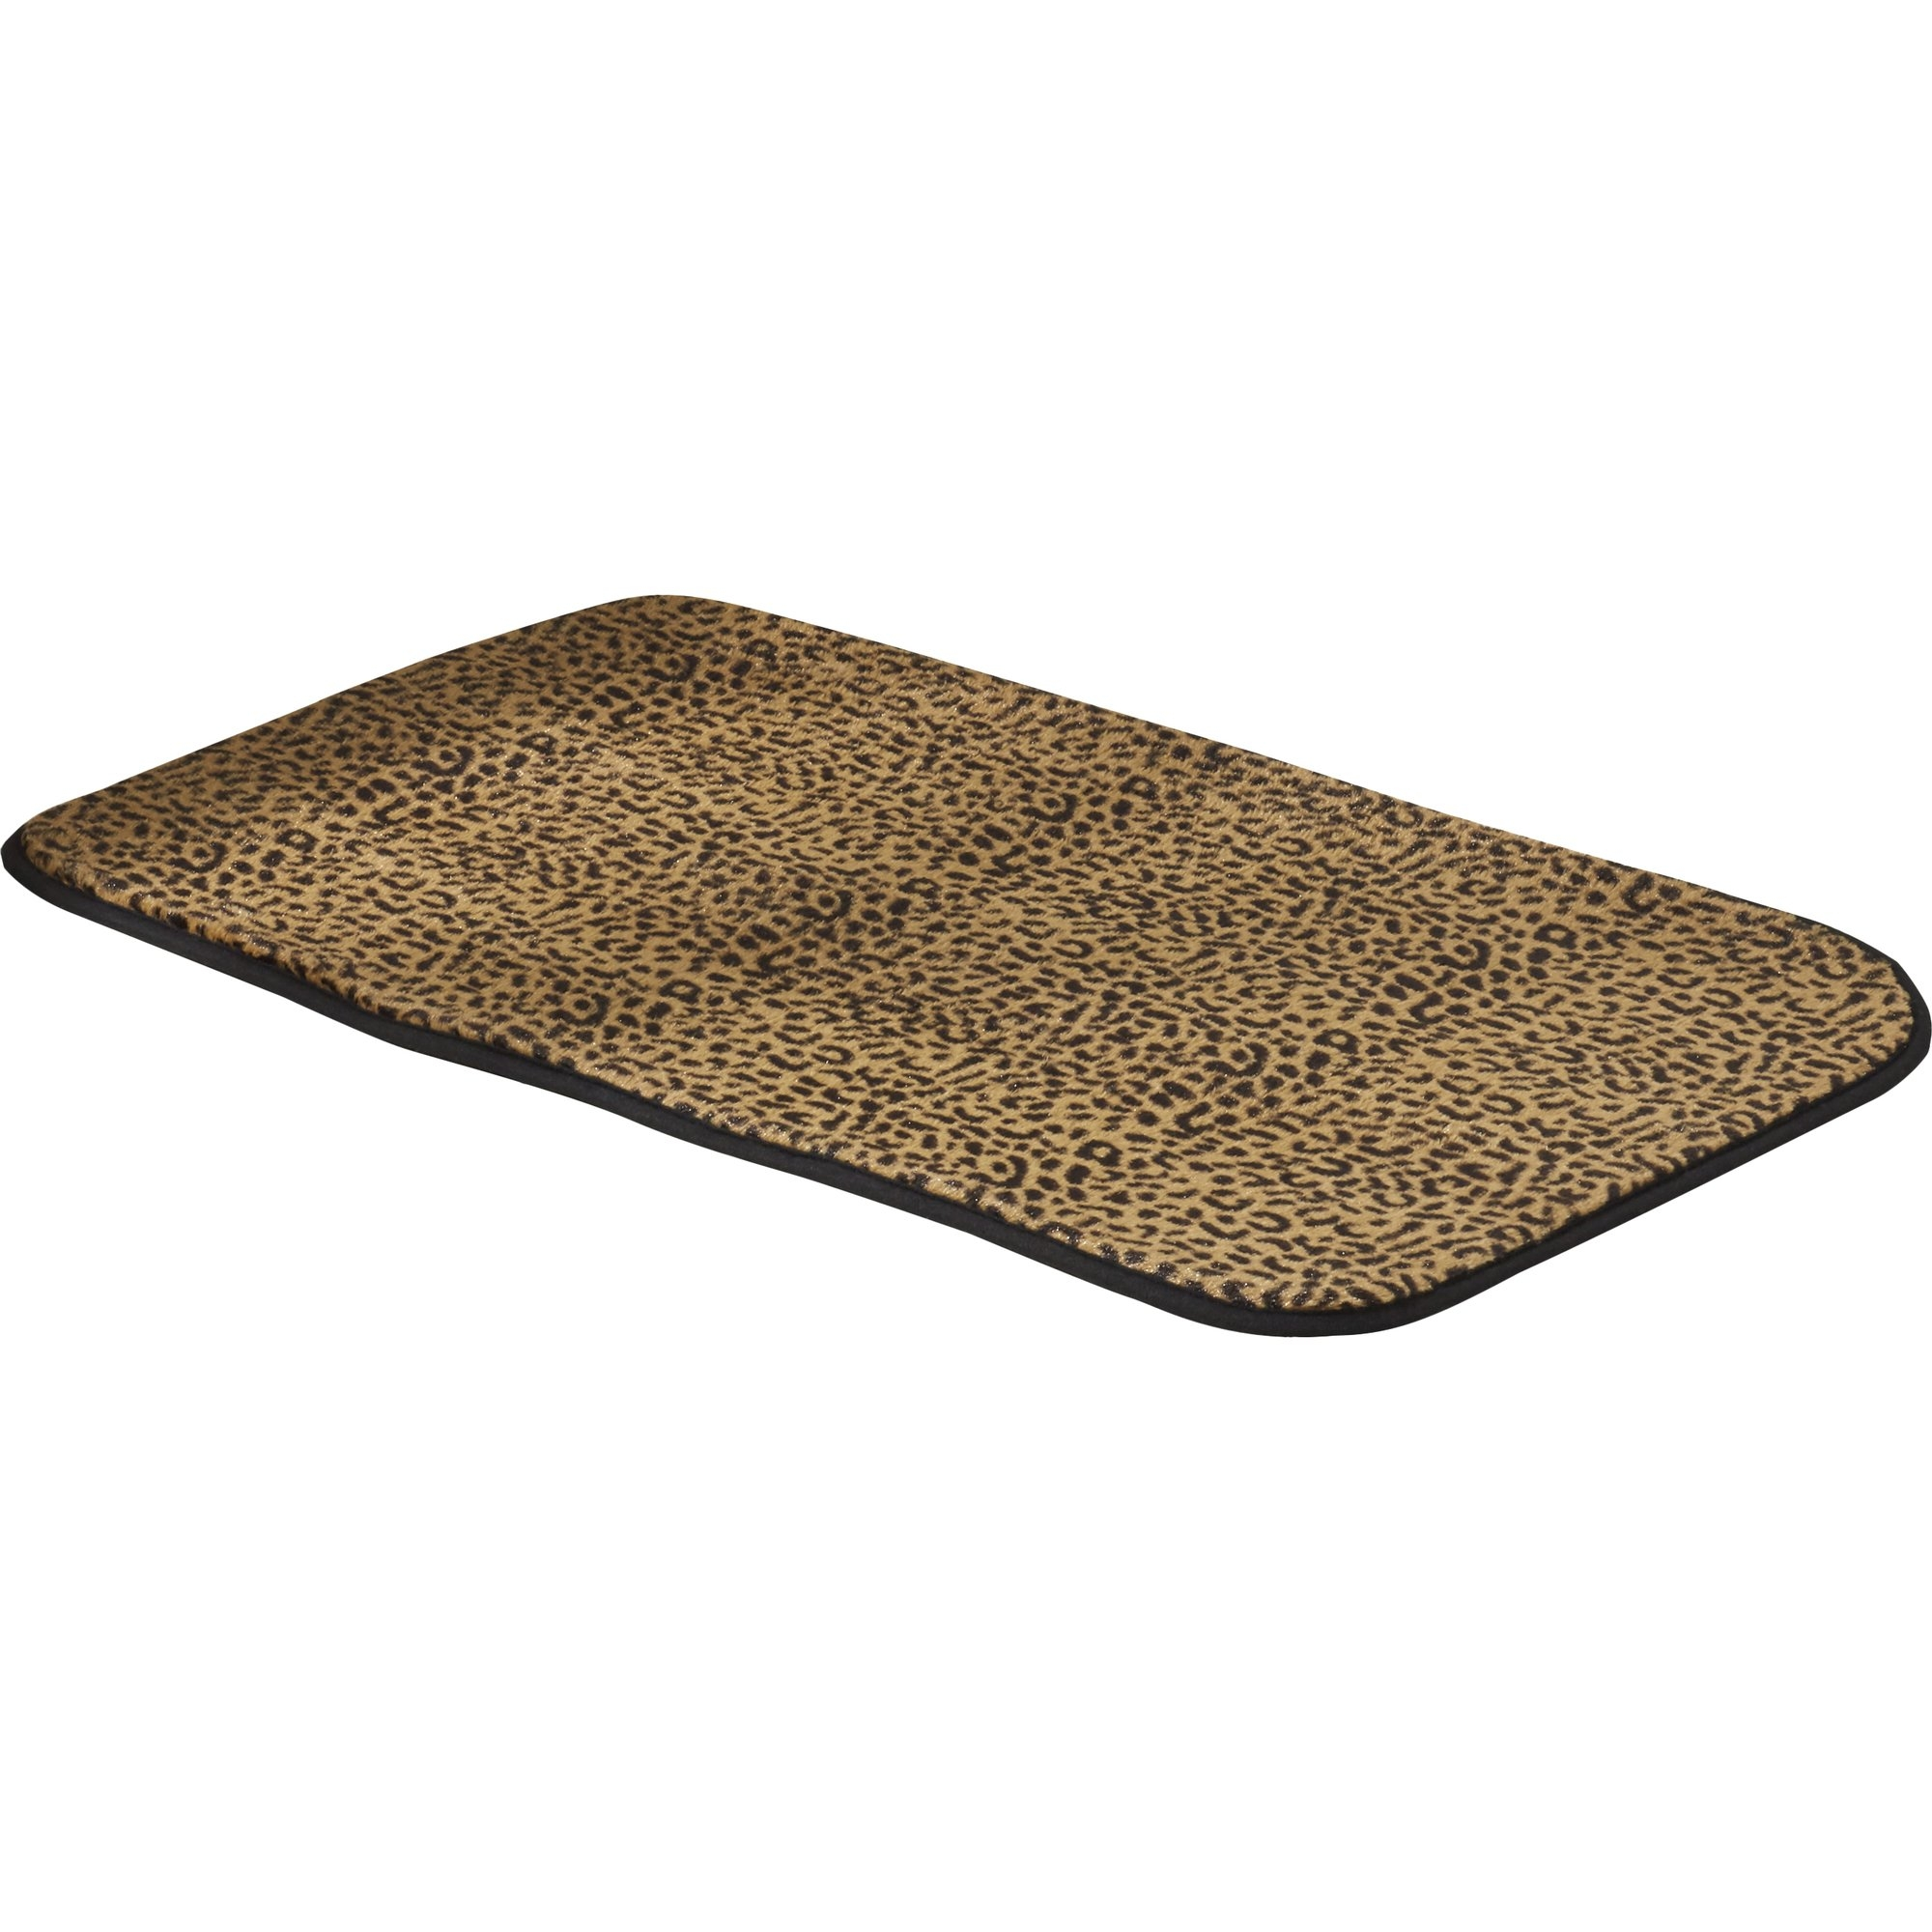 Faux Fur Bath Rugs